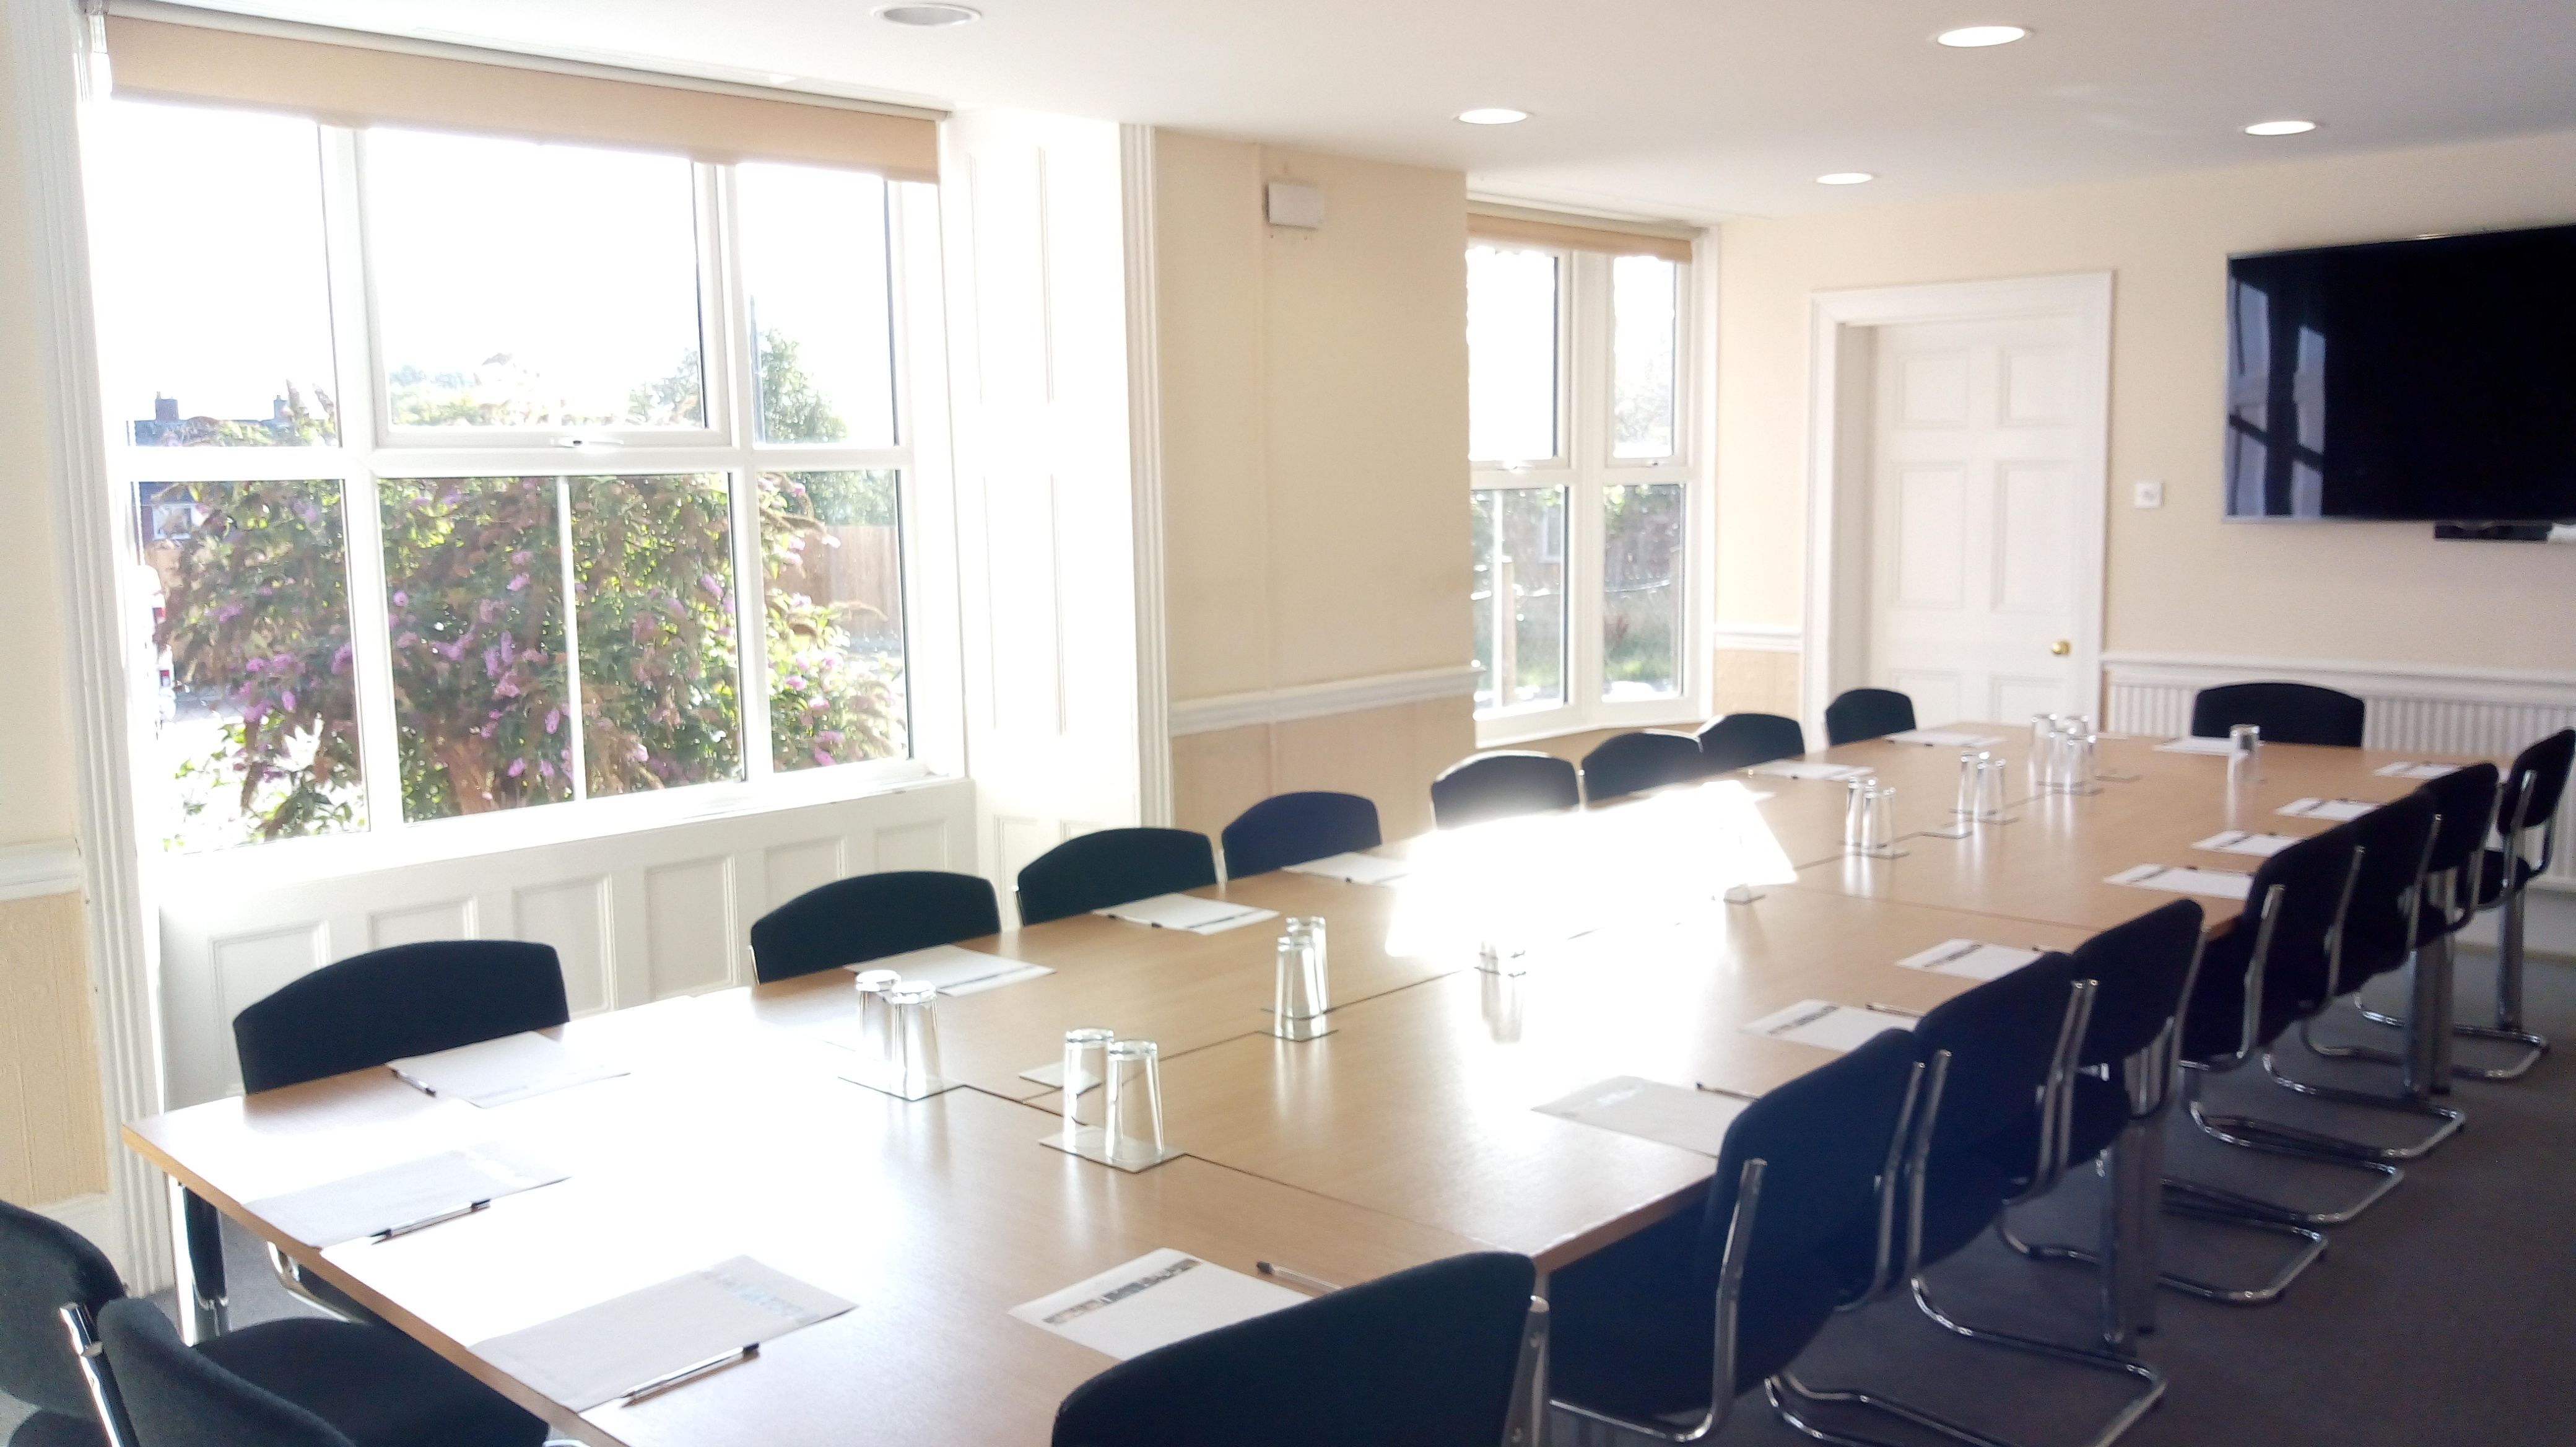 Heath House Conference Centre, Uttoxeter, Staffordshire - Bromley meeting room